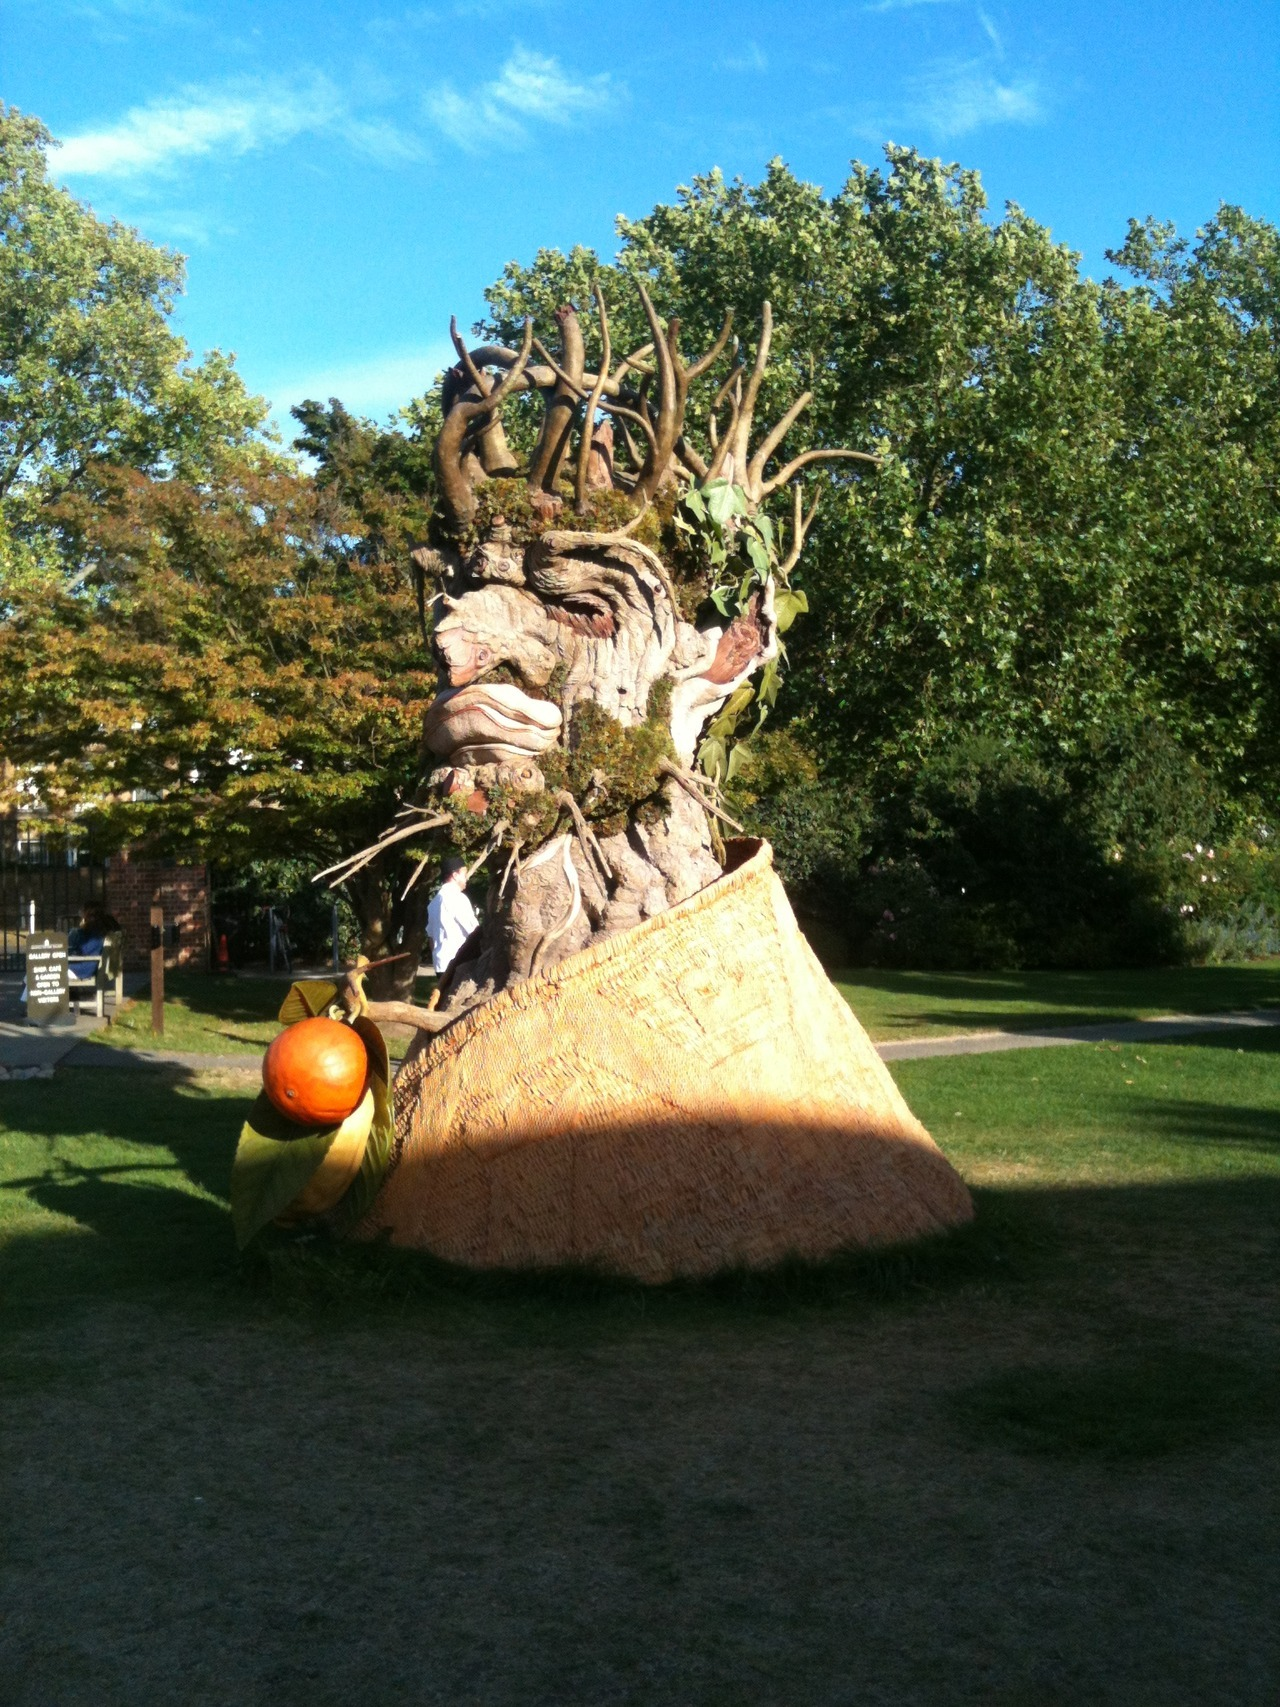 I found these huge Arcimboldo-esque sculptures in the gardens of the Dulwich Picture Gallery.